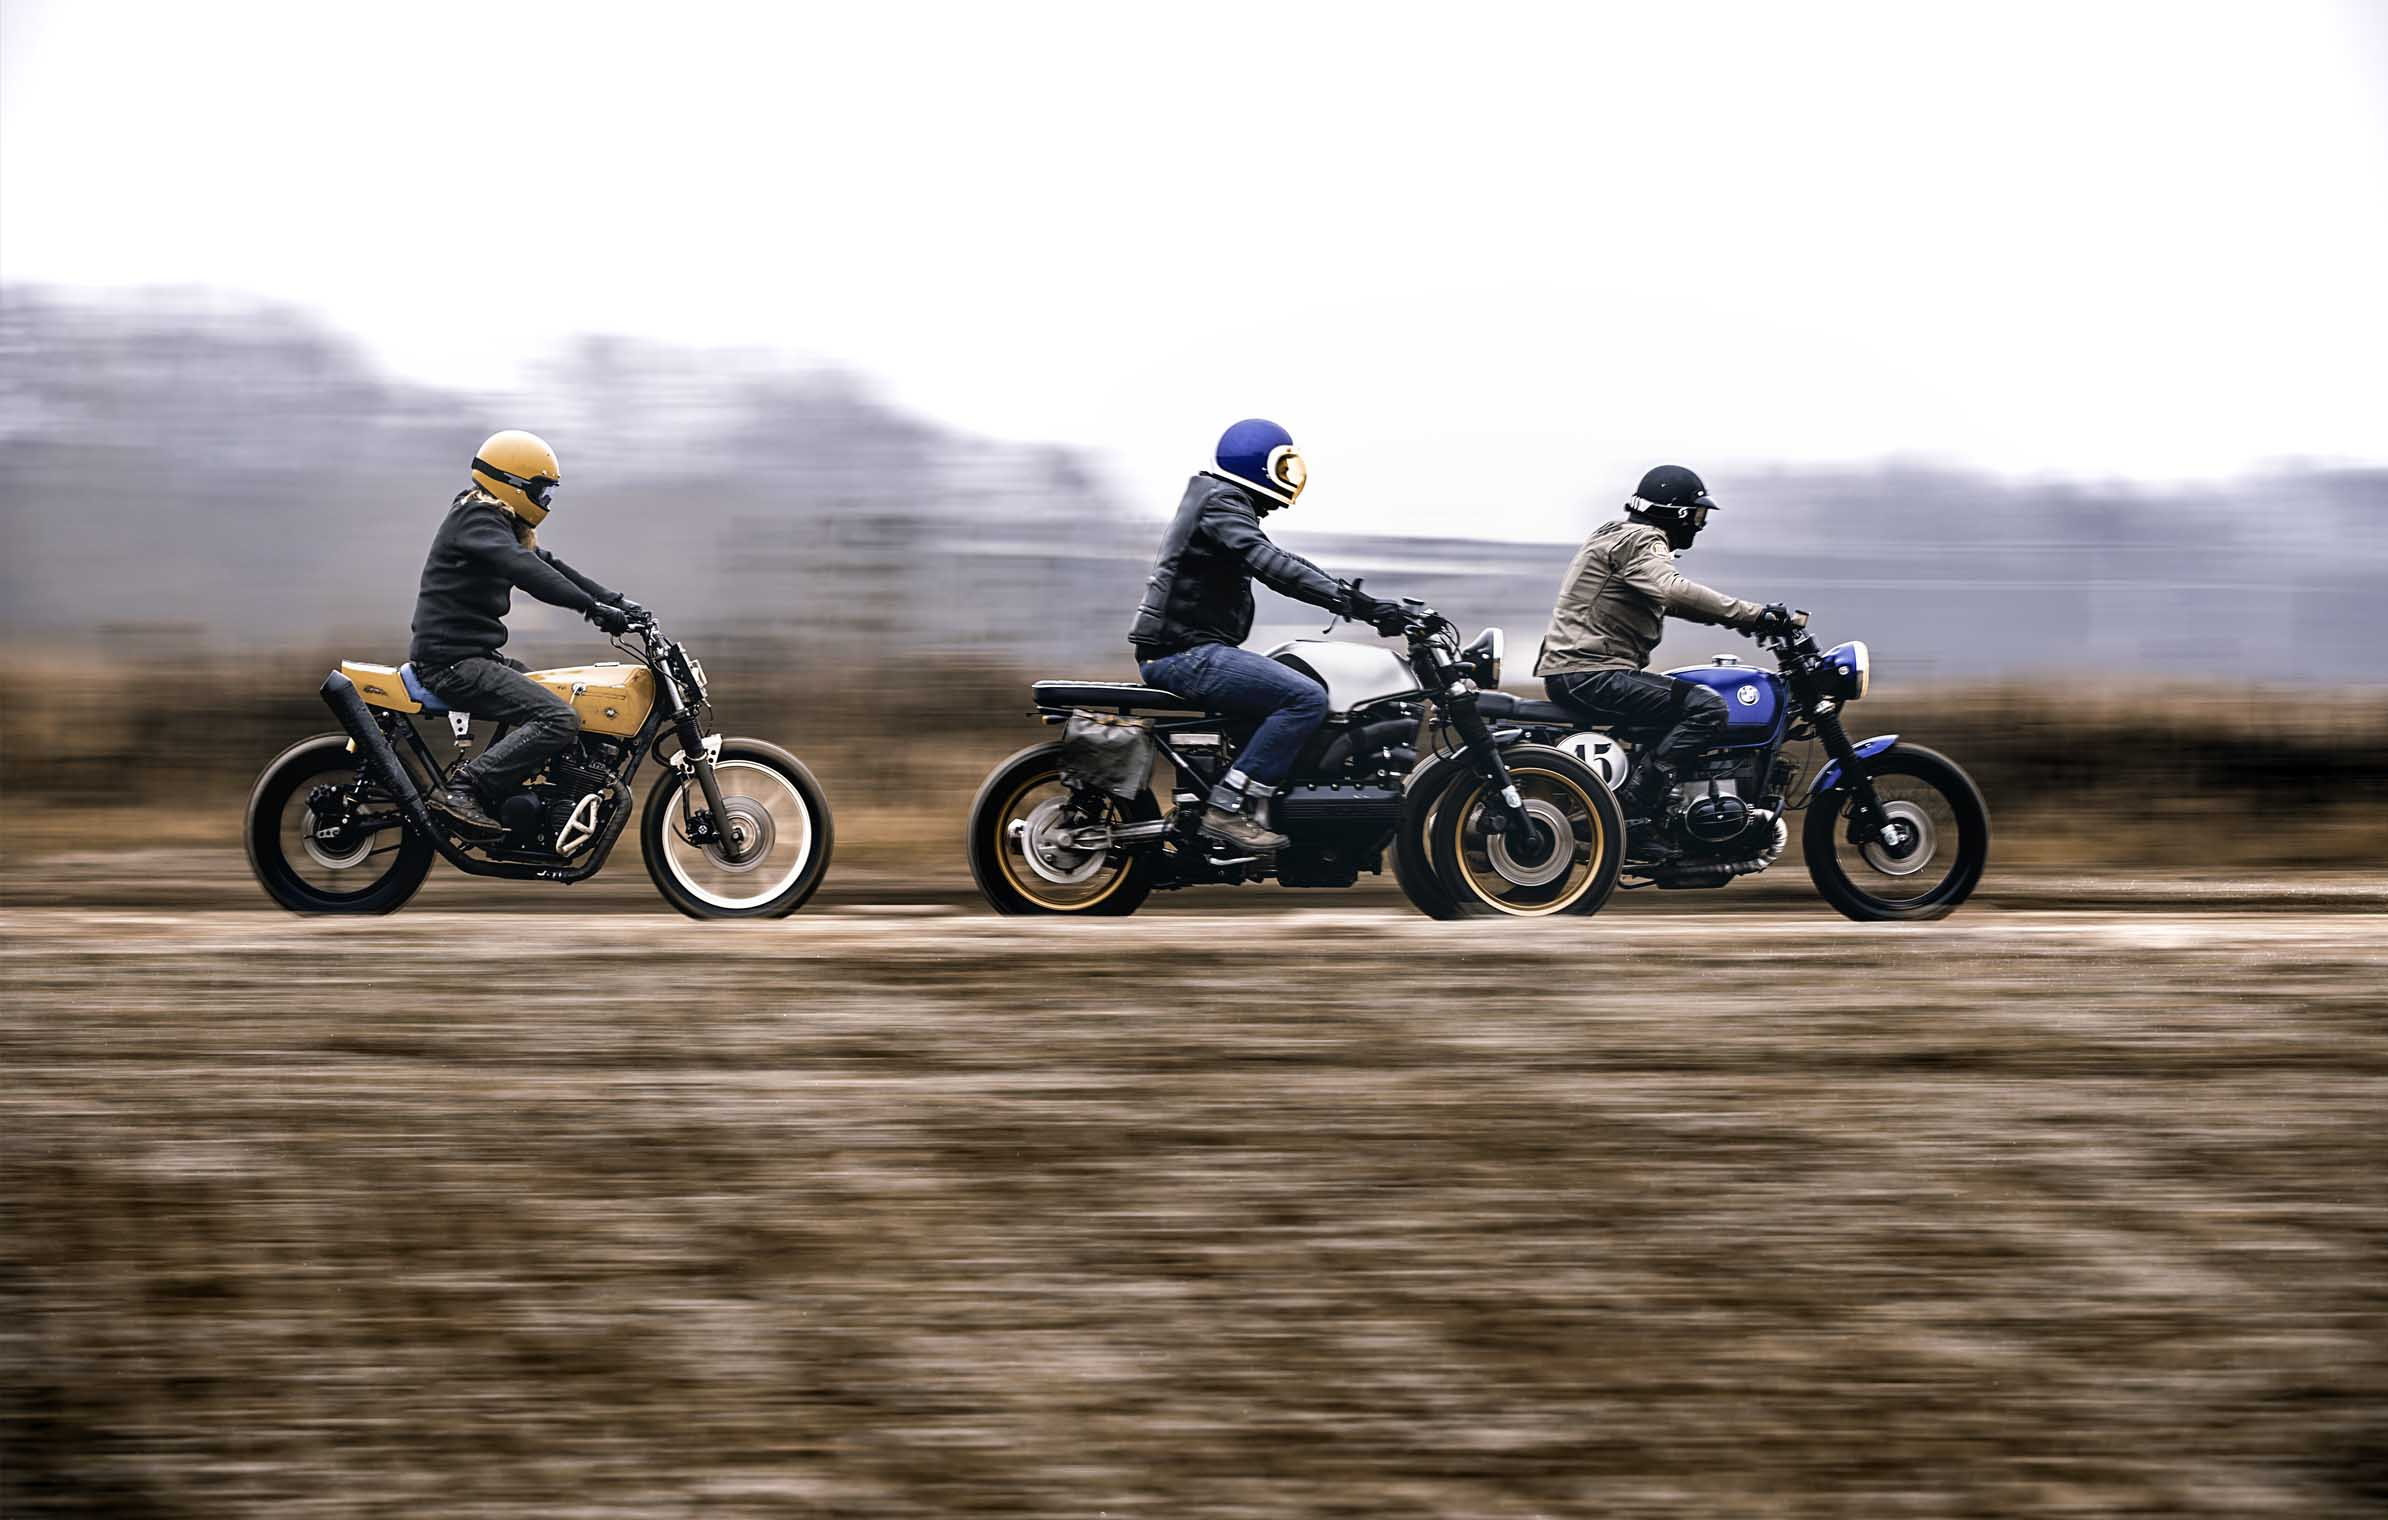 titan_roadtrip_motorcycles_riding_street_three_bmw_kawa